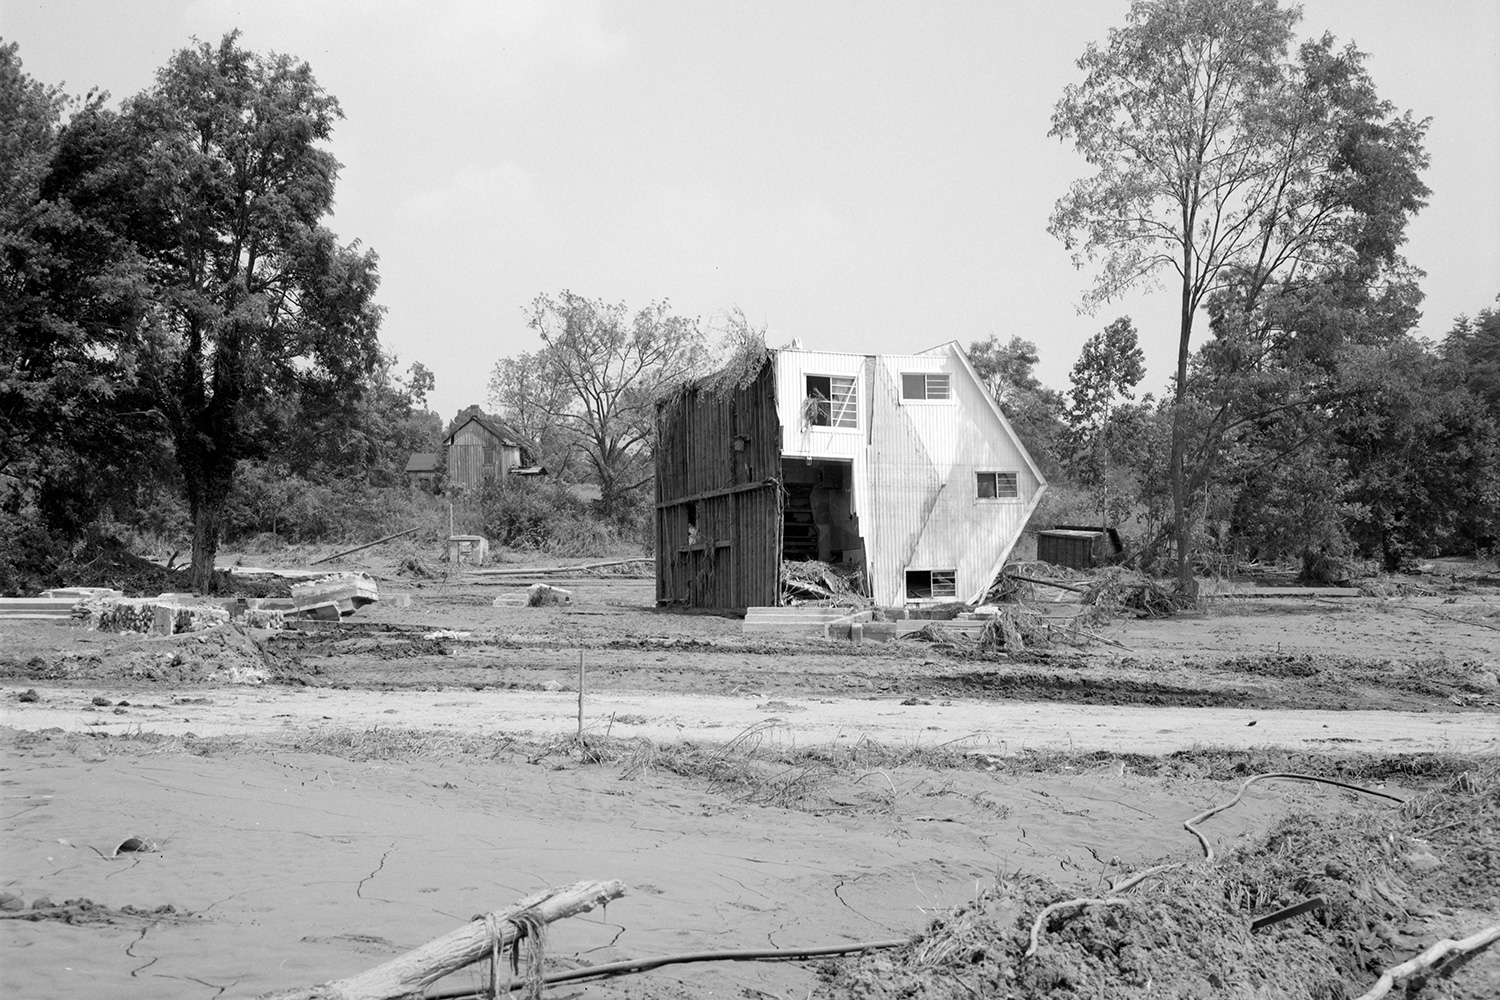 This Nelson County home was turned on its side by floodwaters. (Photo courtesy The Library of Virginia/Flickr Commons)